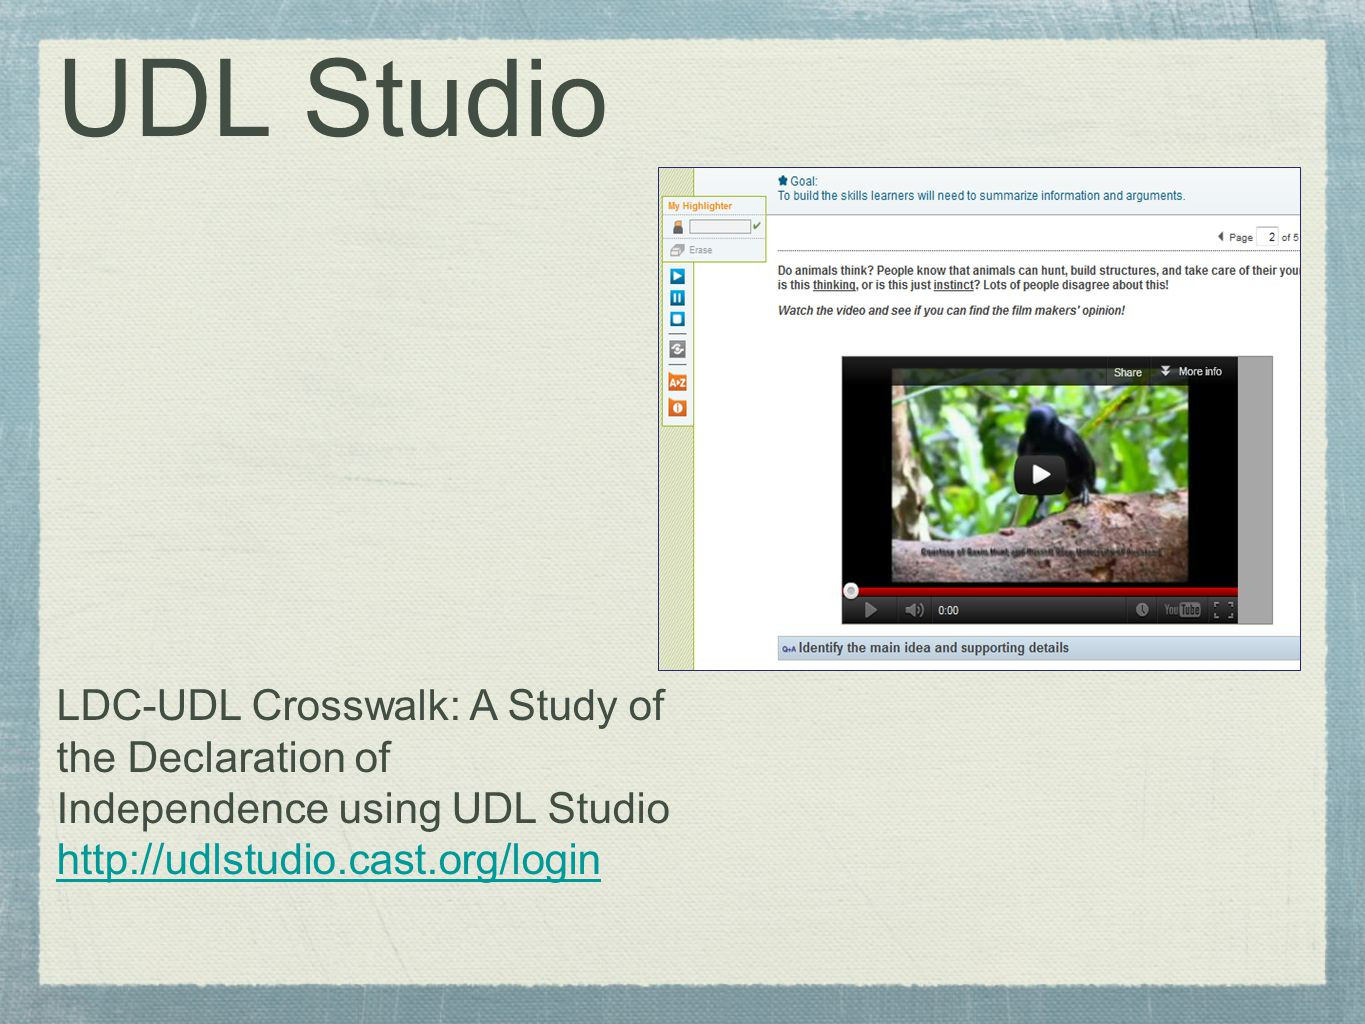 UDL Studio LDC-UDL Crosswalk: A Study of the Declaration of Independence using UDL Studio http://udlstudio.cast.org/login http://udlstudio.cast.org/login